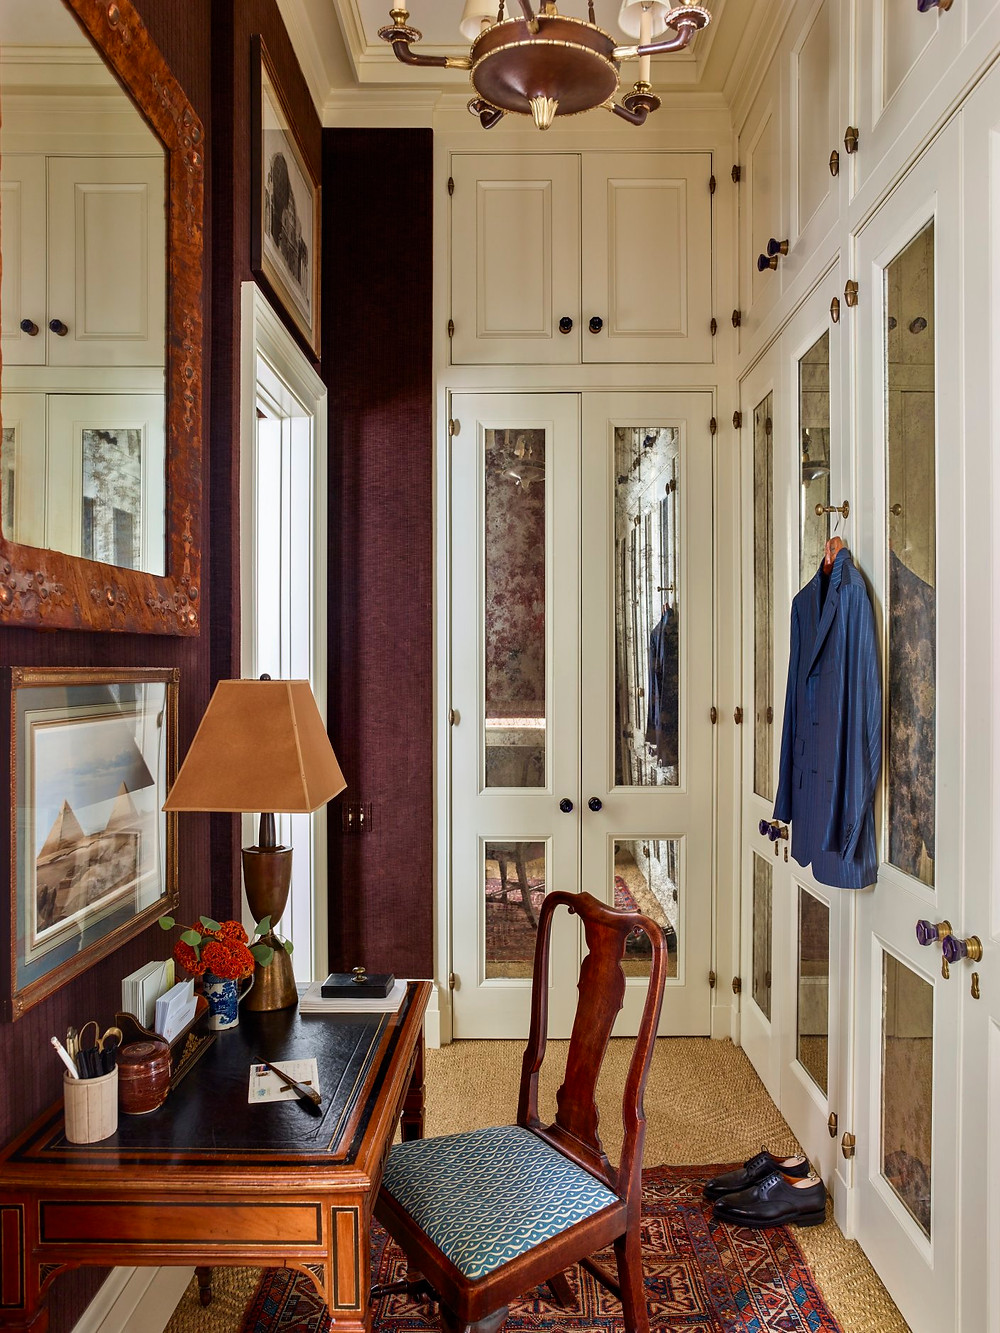 Cabinetry inset with antique mirrors